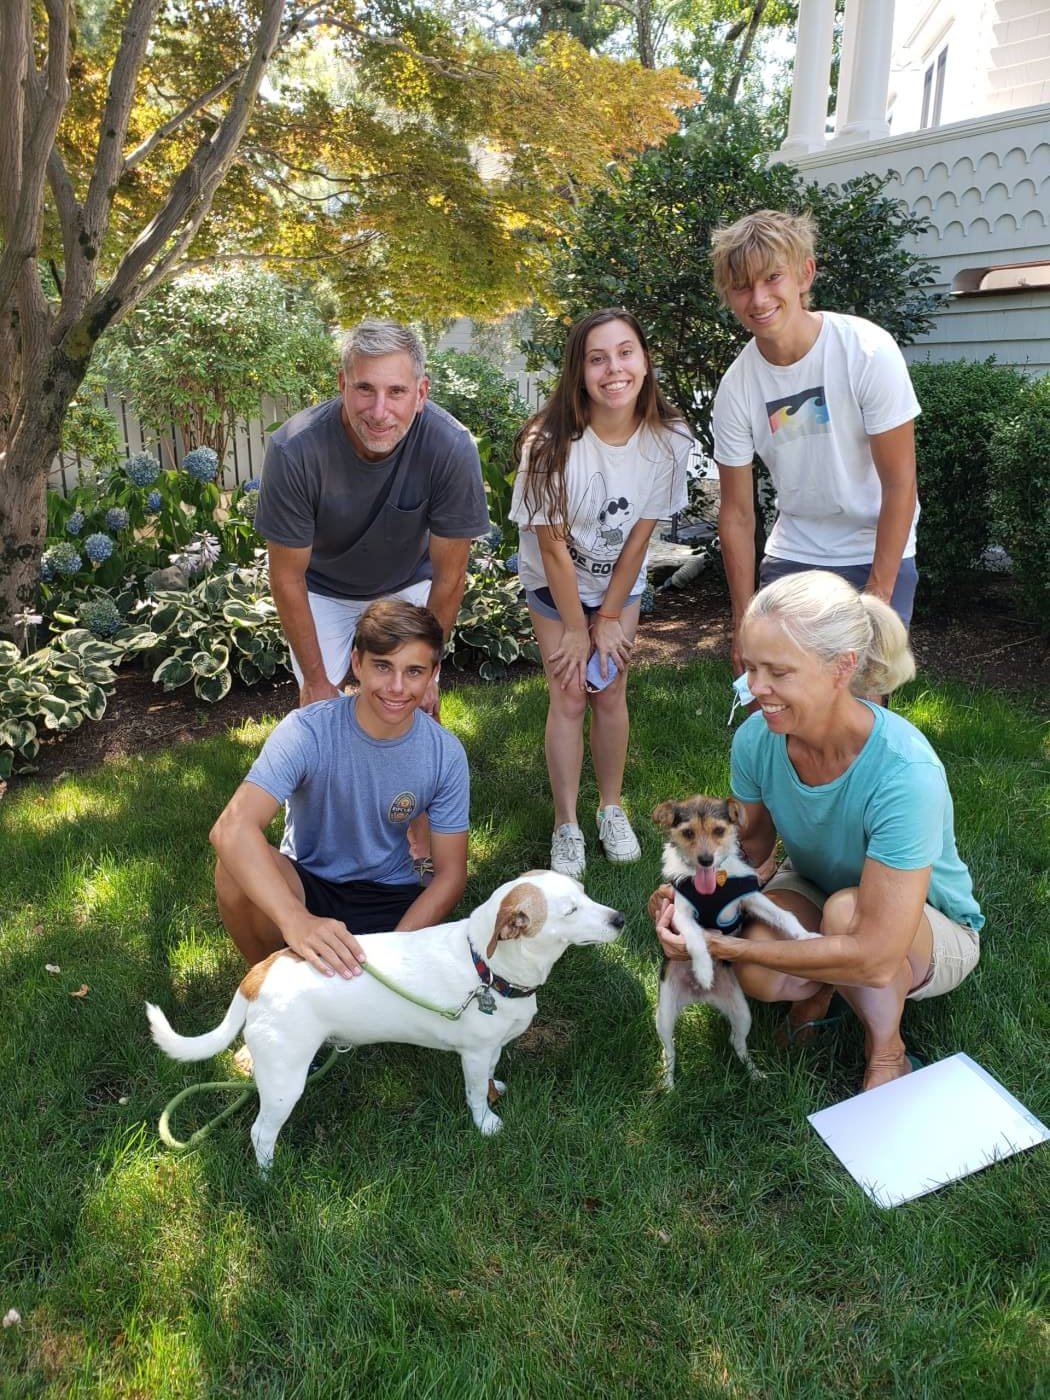 Bonnie with her new loving family